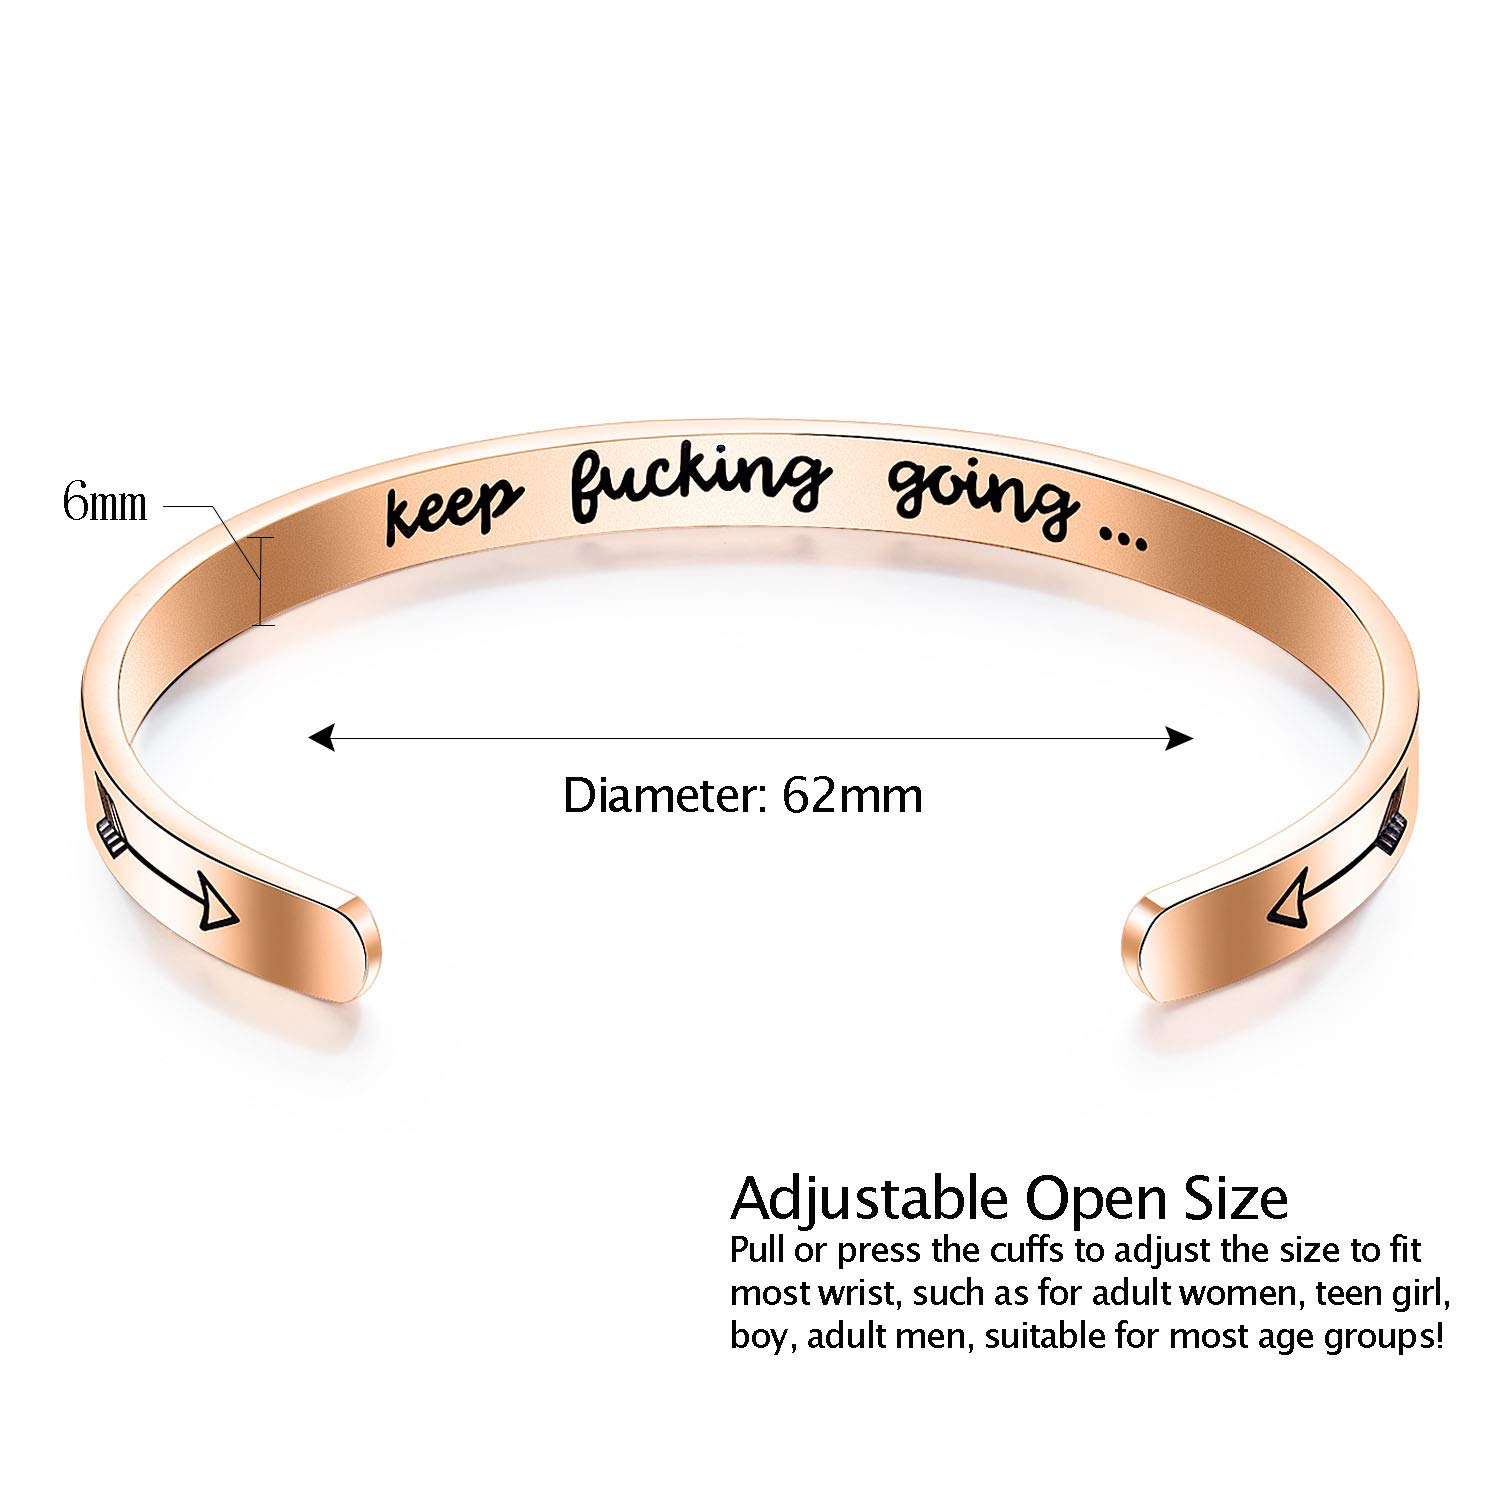 GAGAFEEL Inspirational Bracelet Mantra Cuff Engraved Keep Going Stainless Steel Bangle Encouragement Jewelry Gift for Women Girl Teen Friends (Rose Gold)